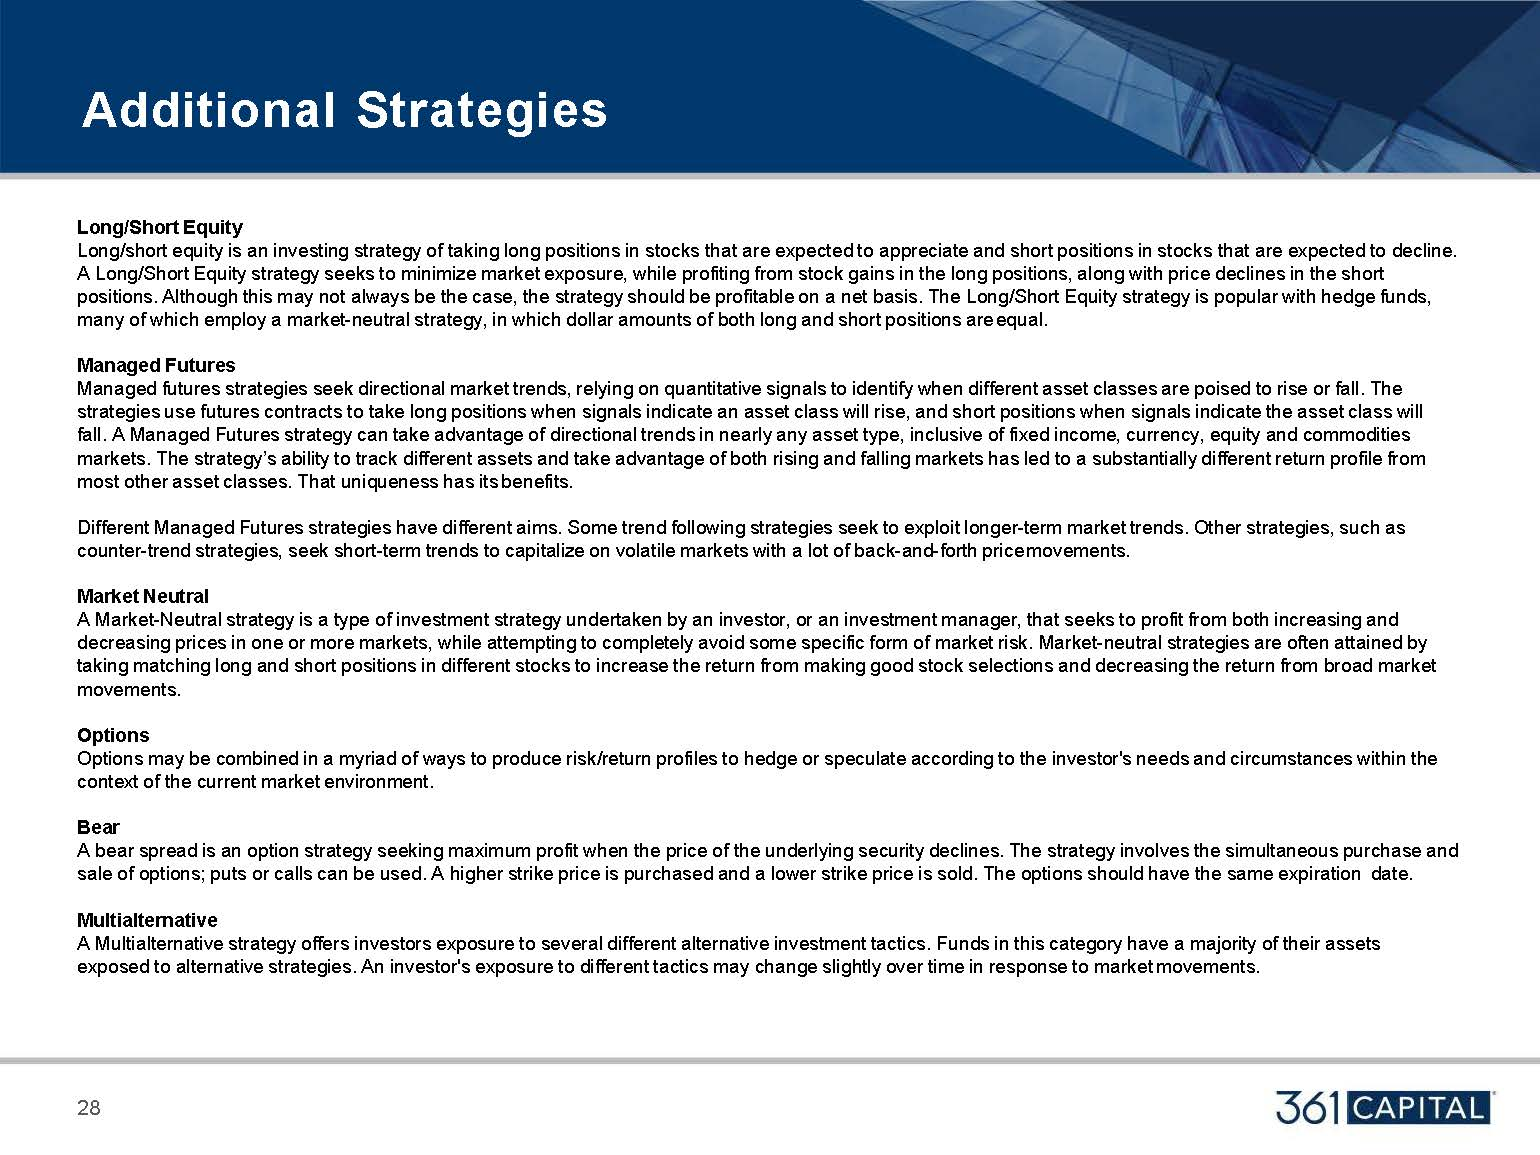 Additional Strategies Description